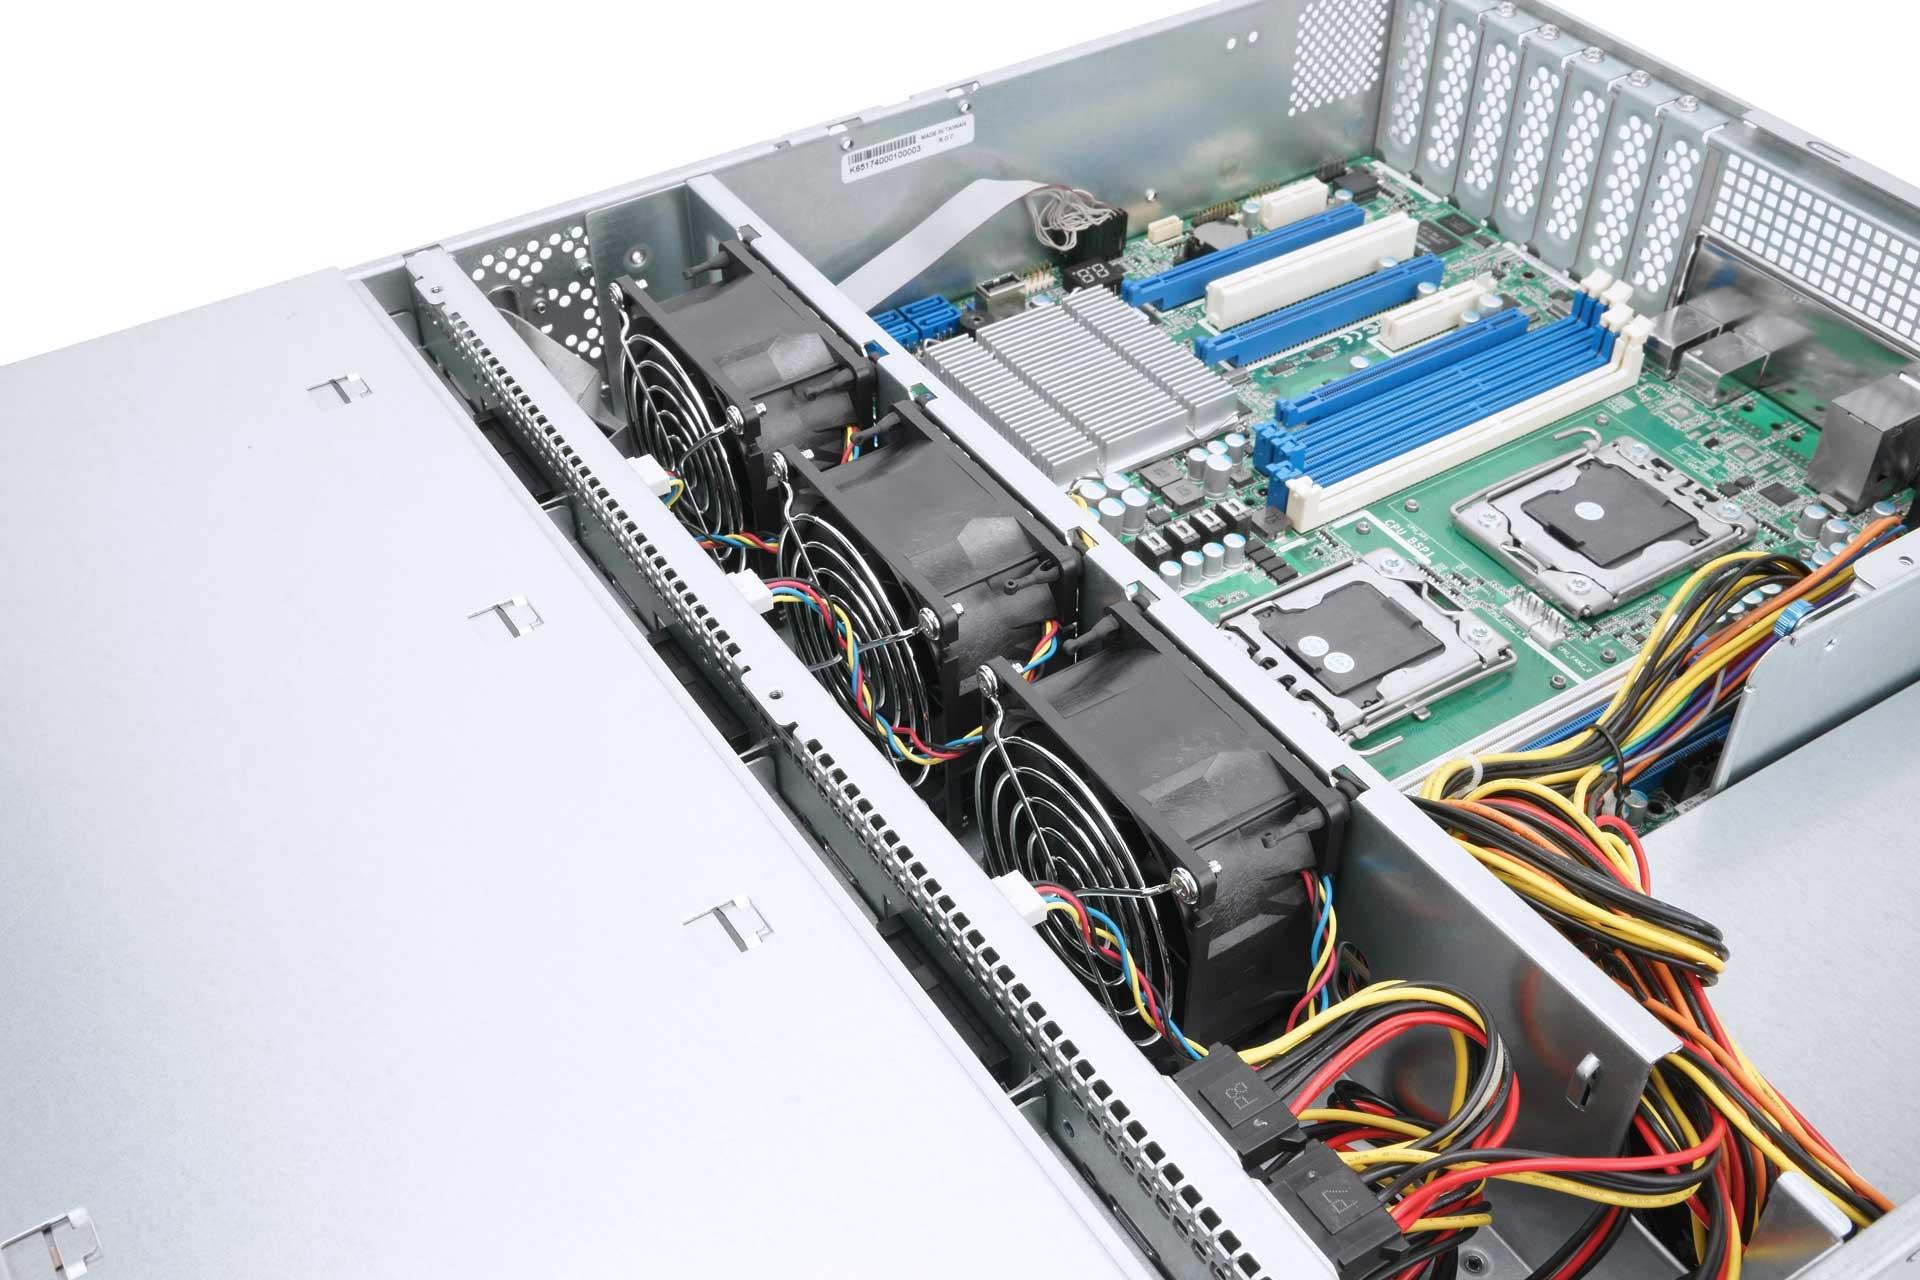 IW-RS212-02SN - server system assembly